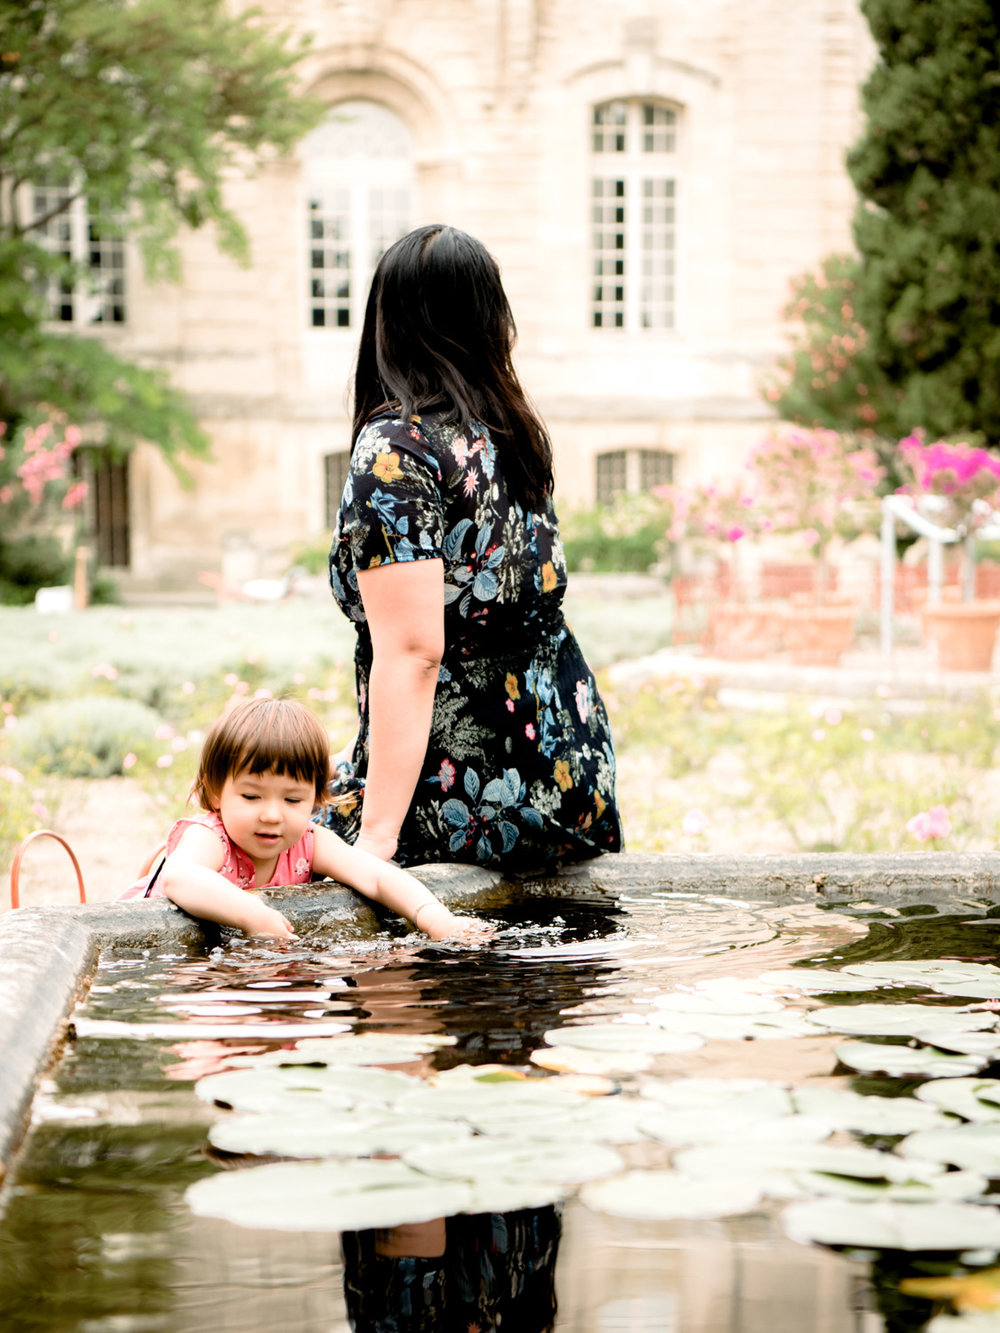 The garden of Fort Saint-Andre. Lisa loved splashing in the fountain pool.